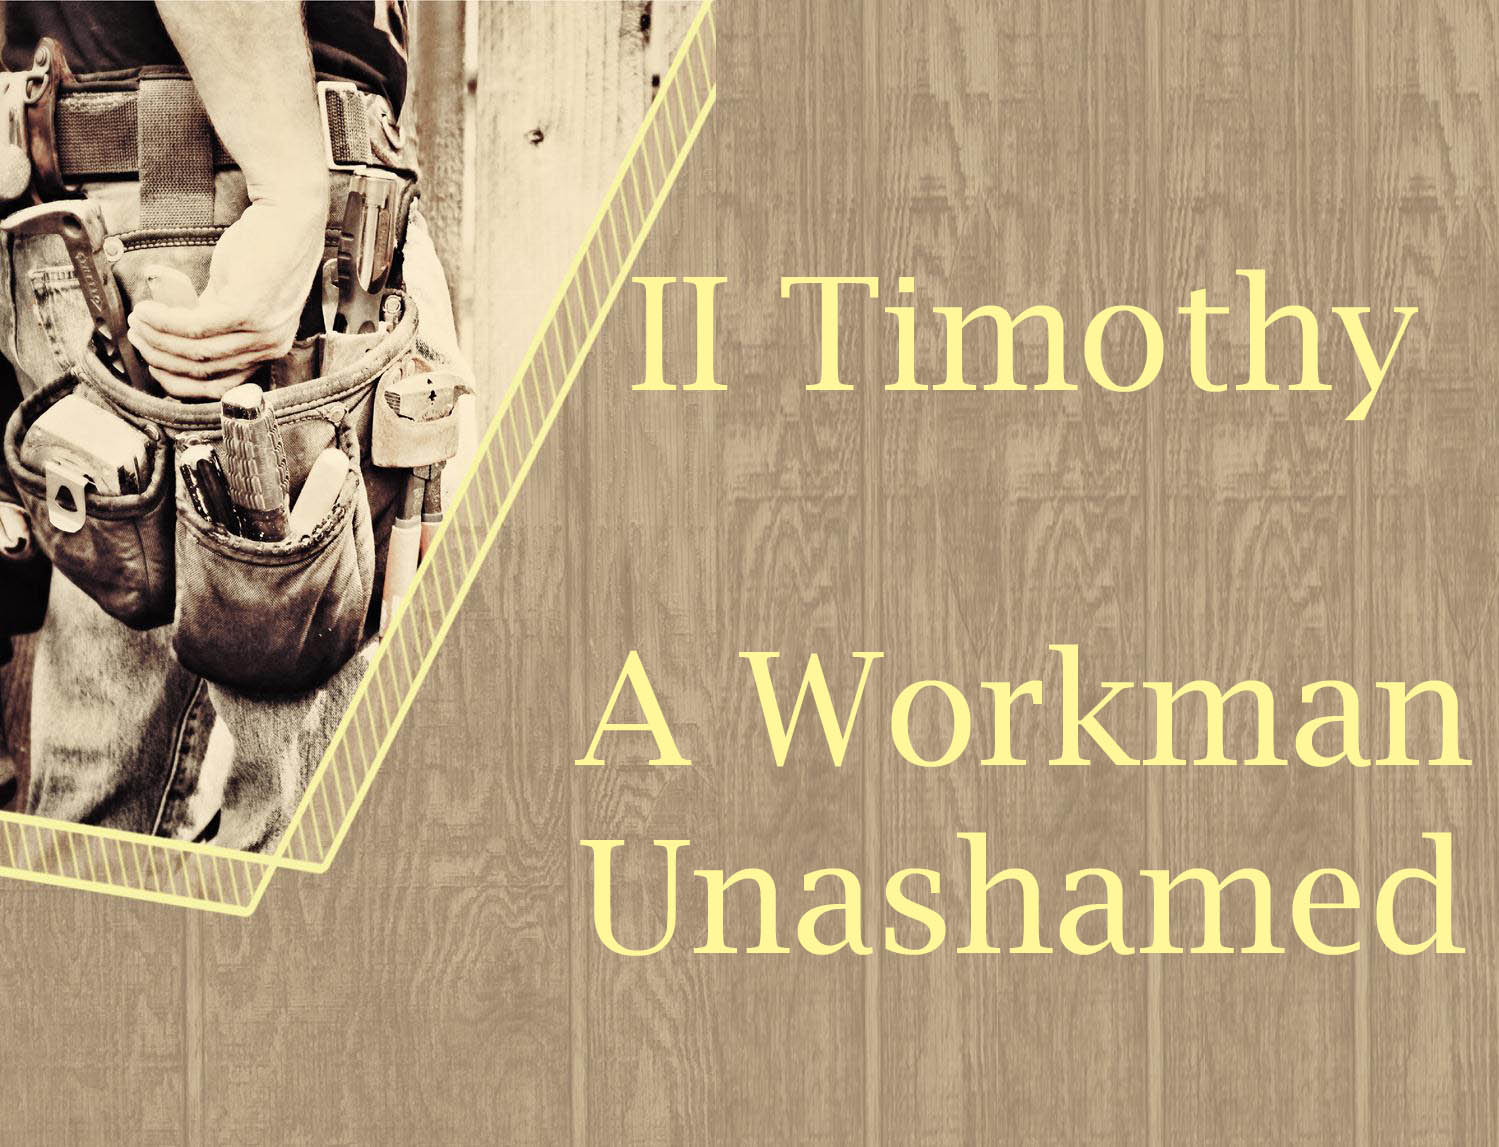 A Workman Unashamed